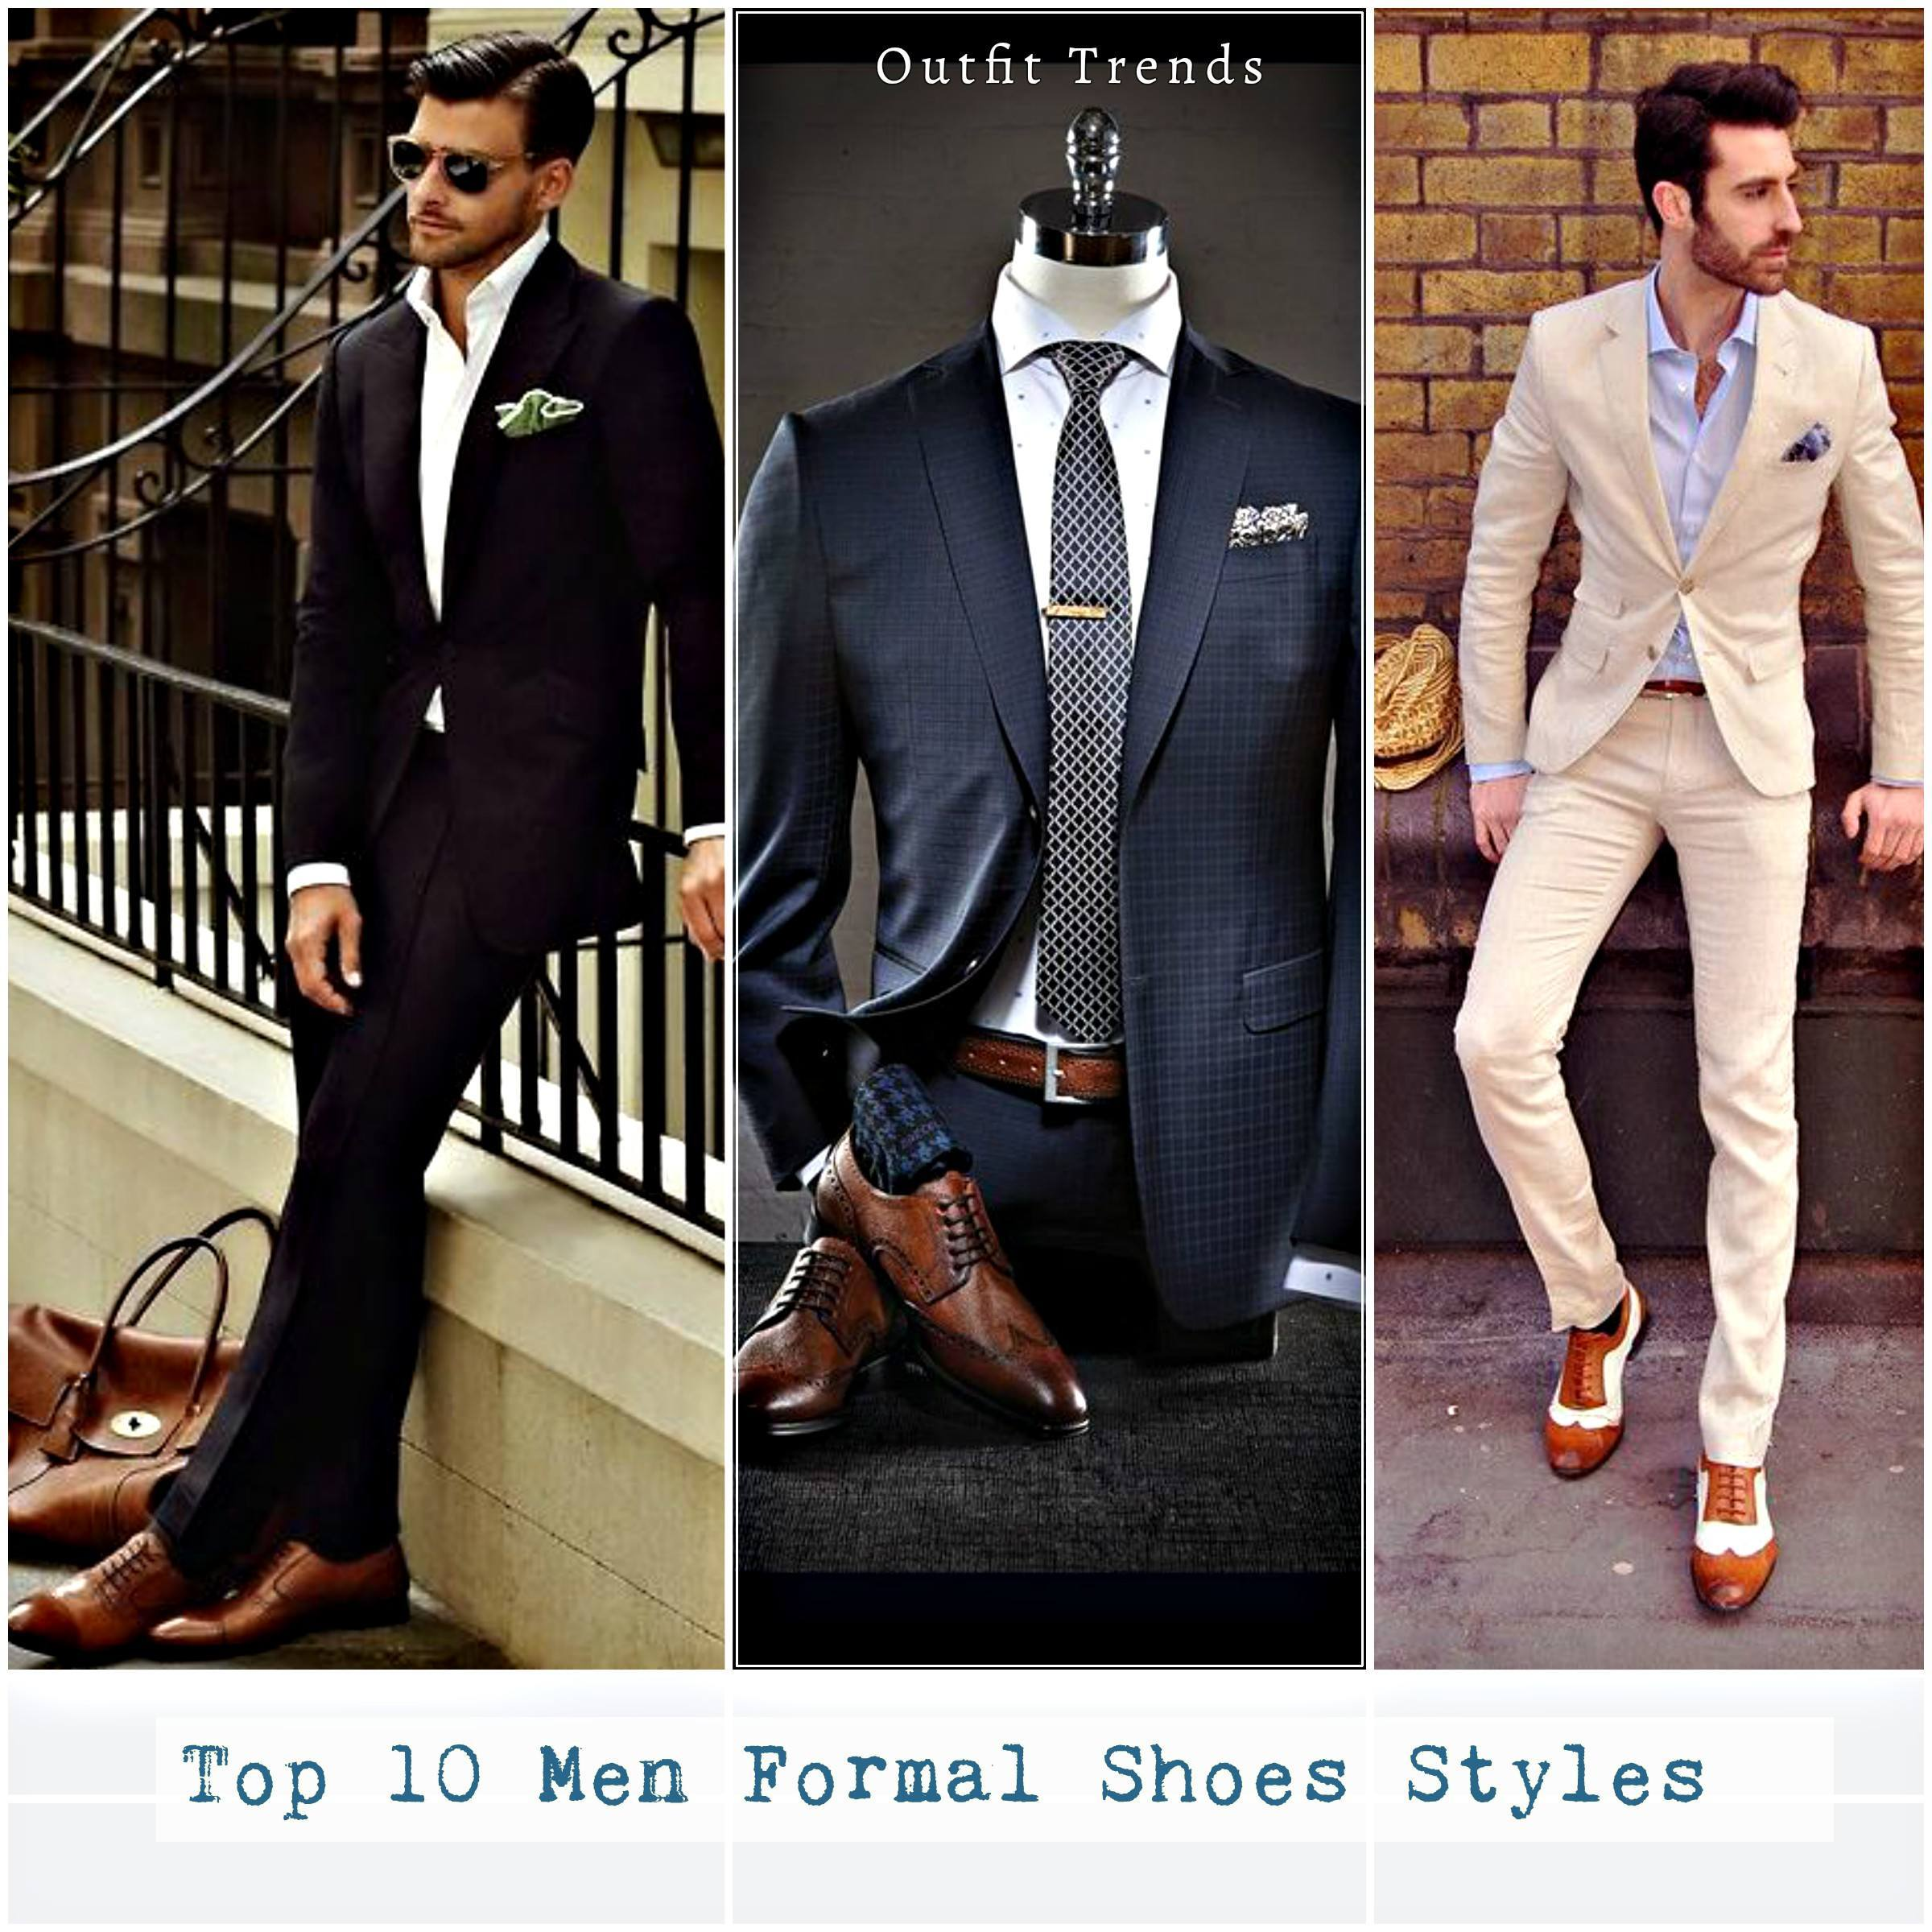 Top 10 Men Formal Shoes Styles And